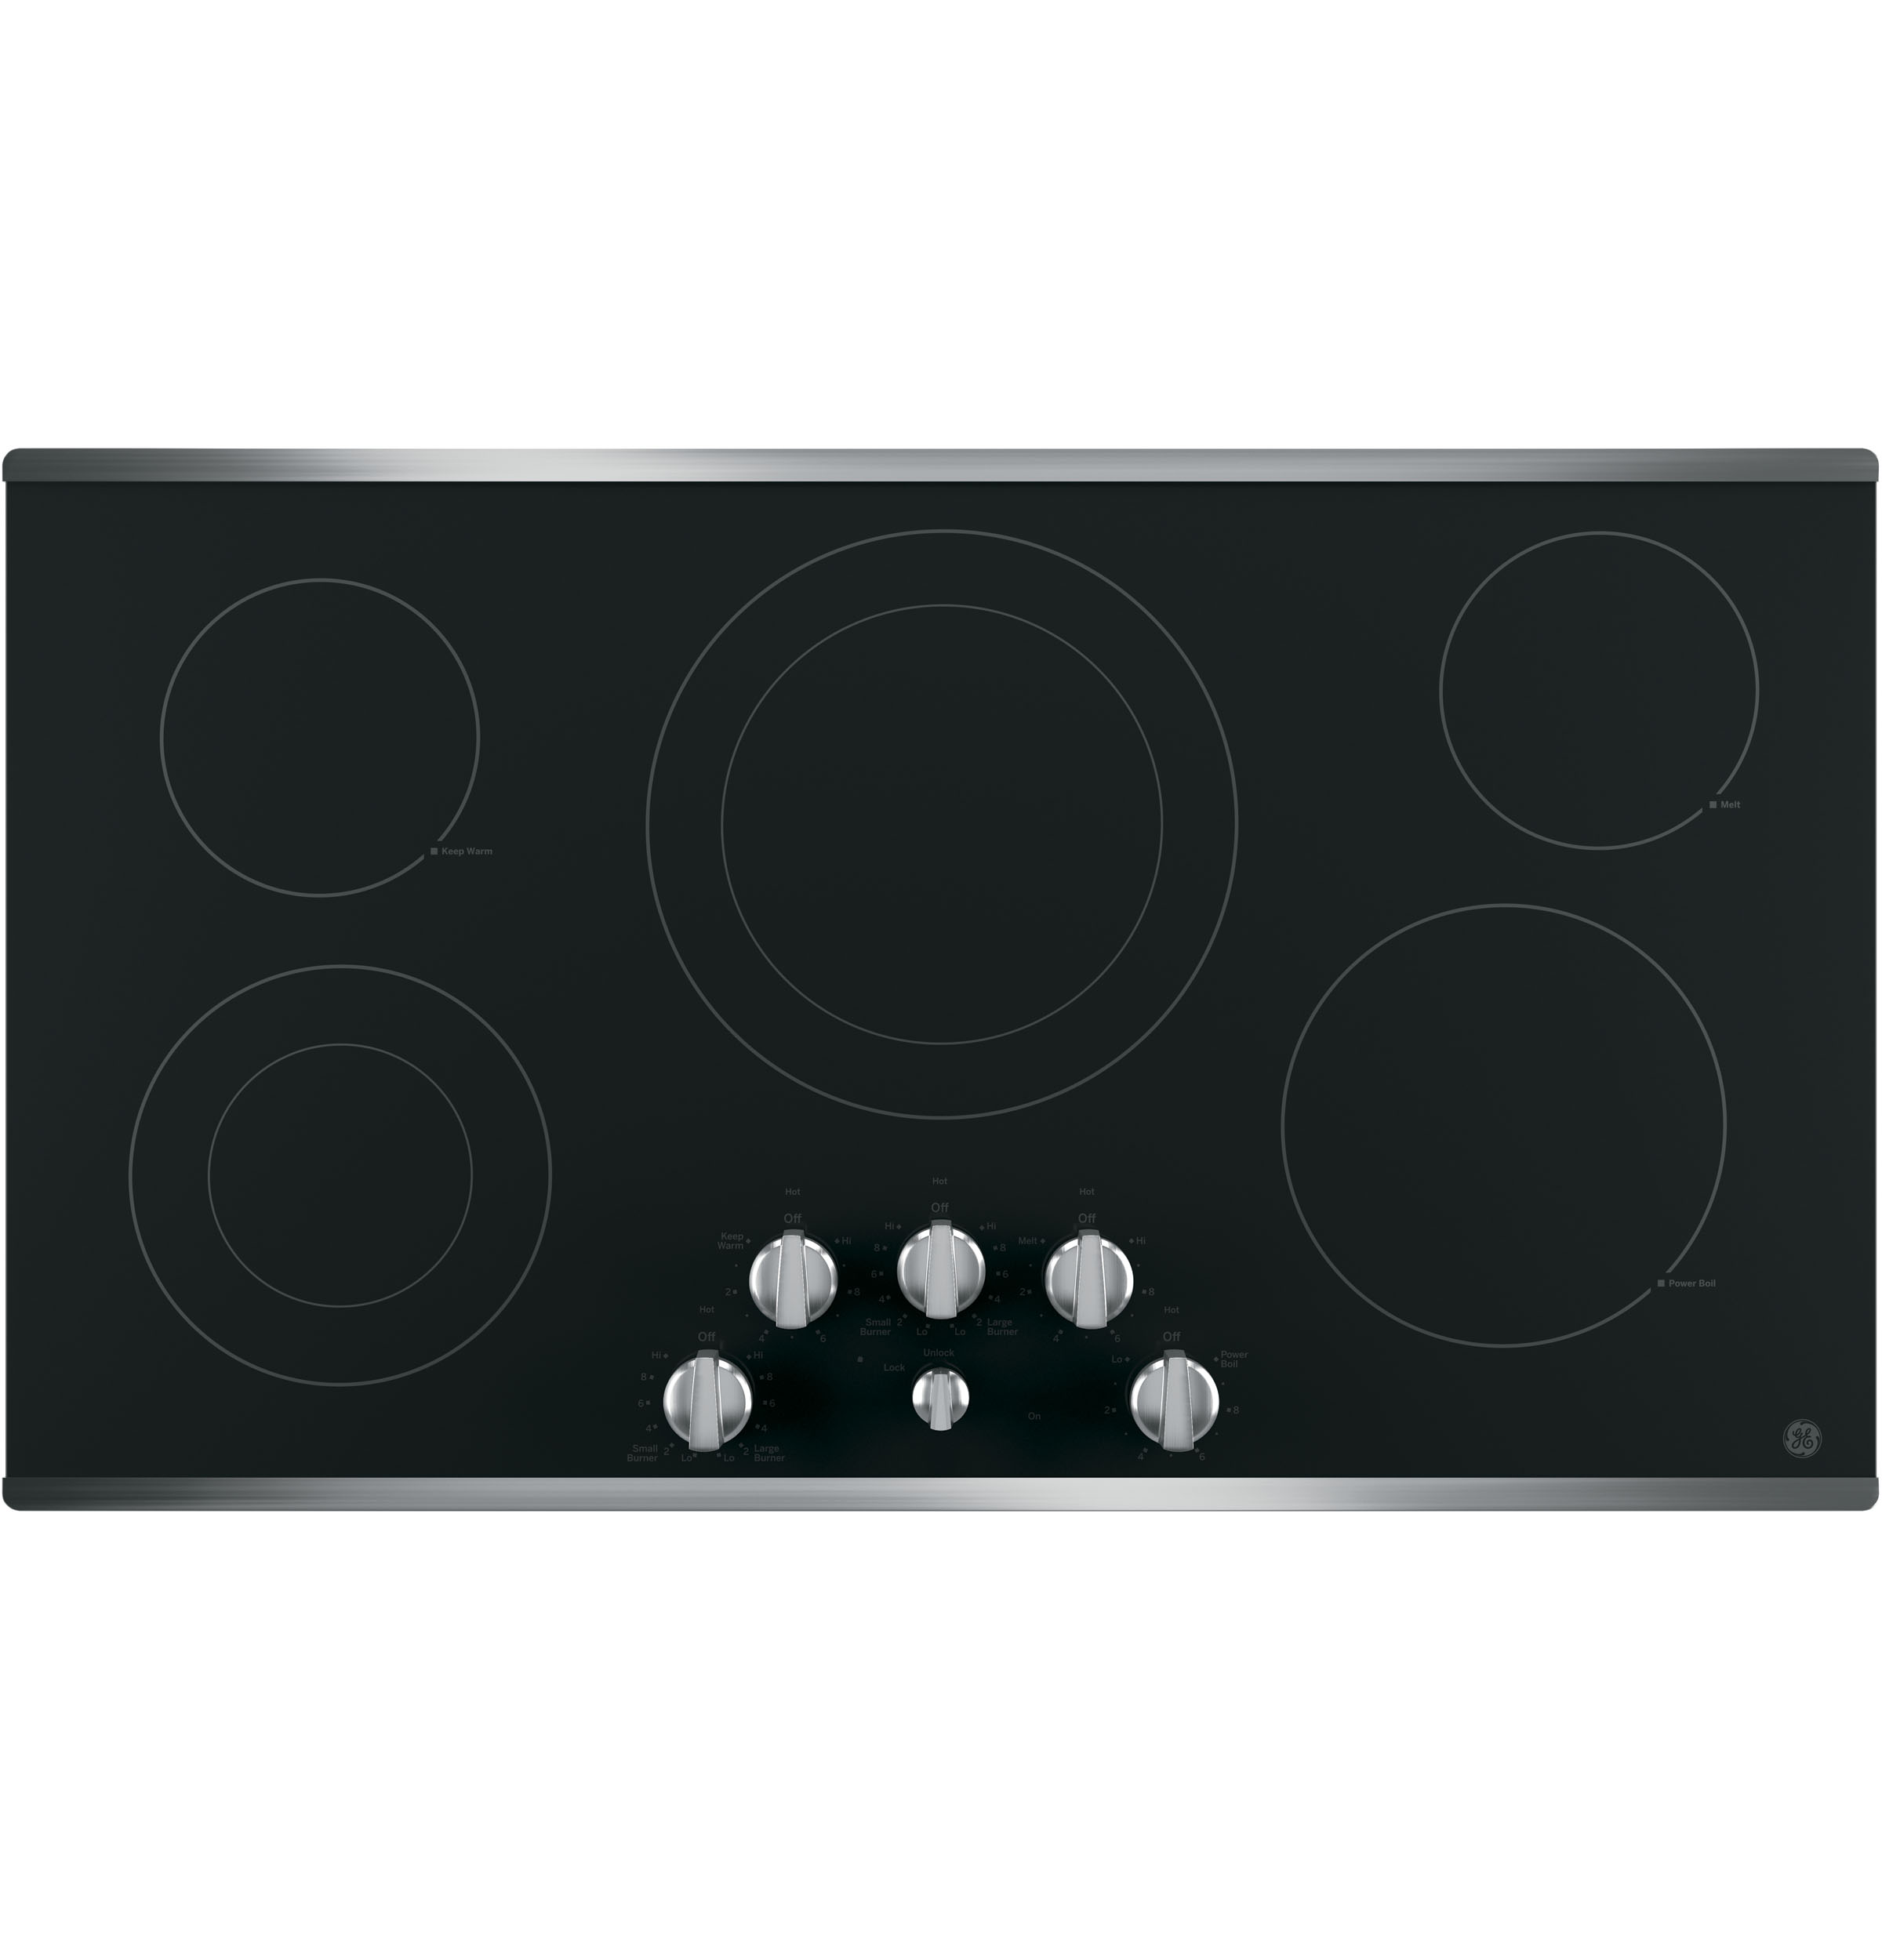 "GE GE® 36"" Built-In Knob Control Electric Cooktop"